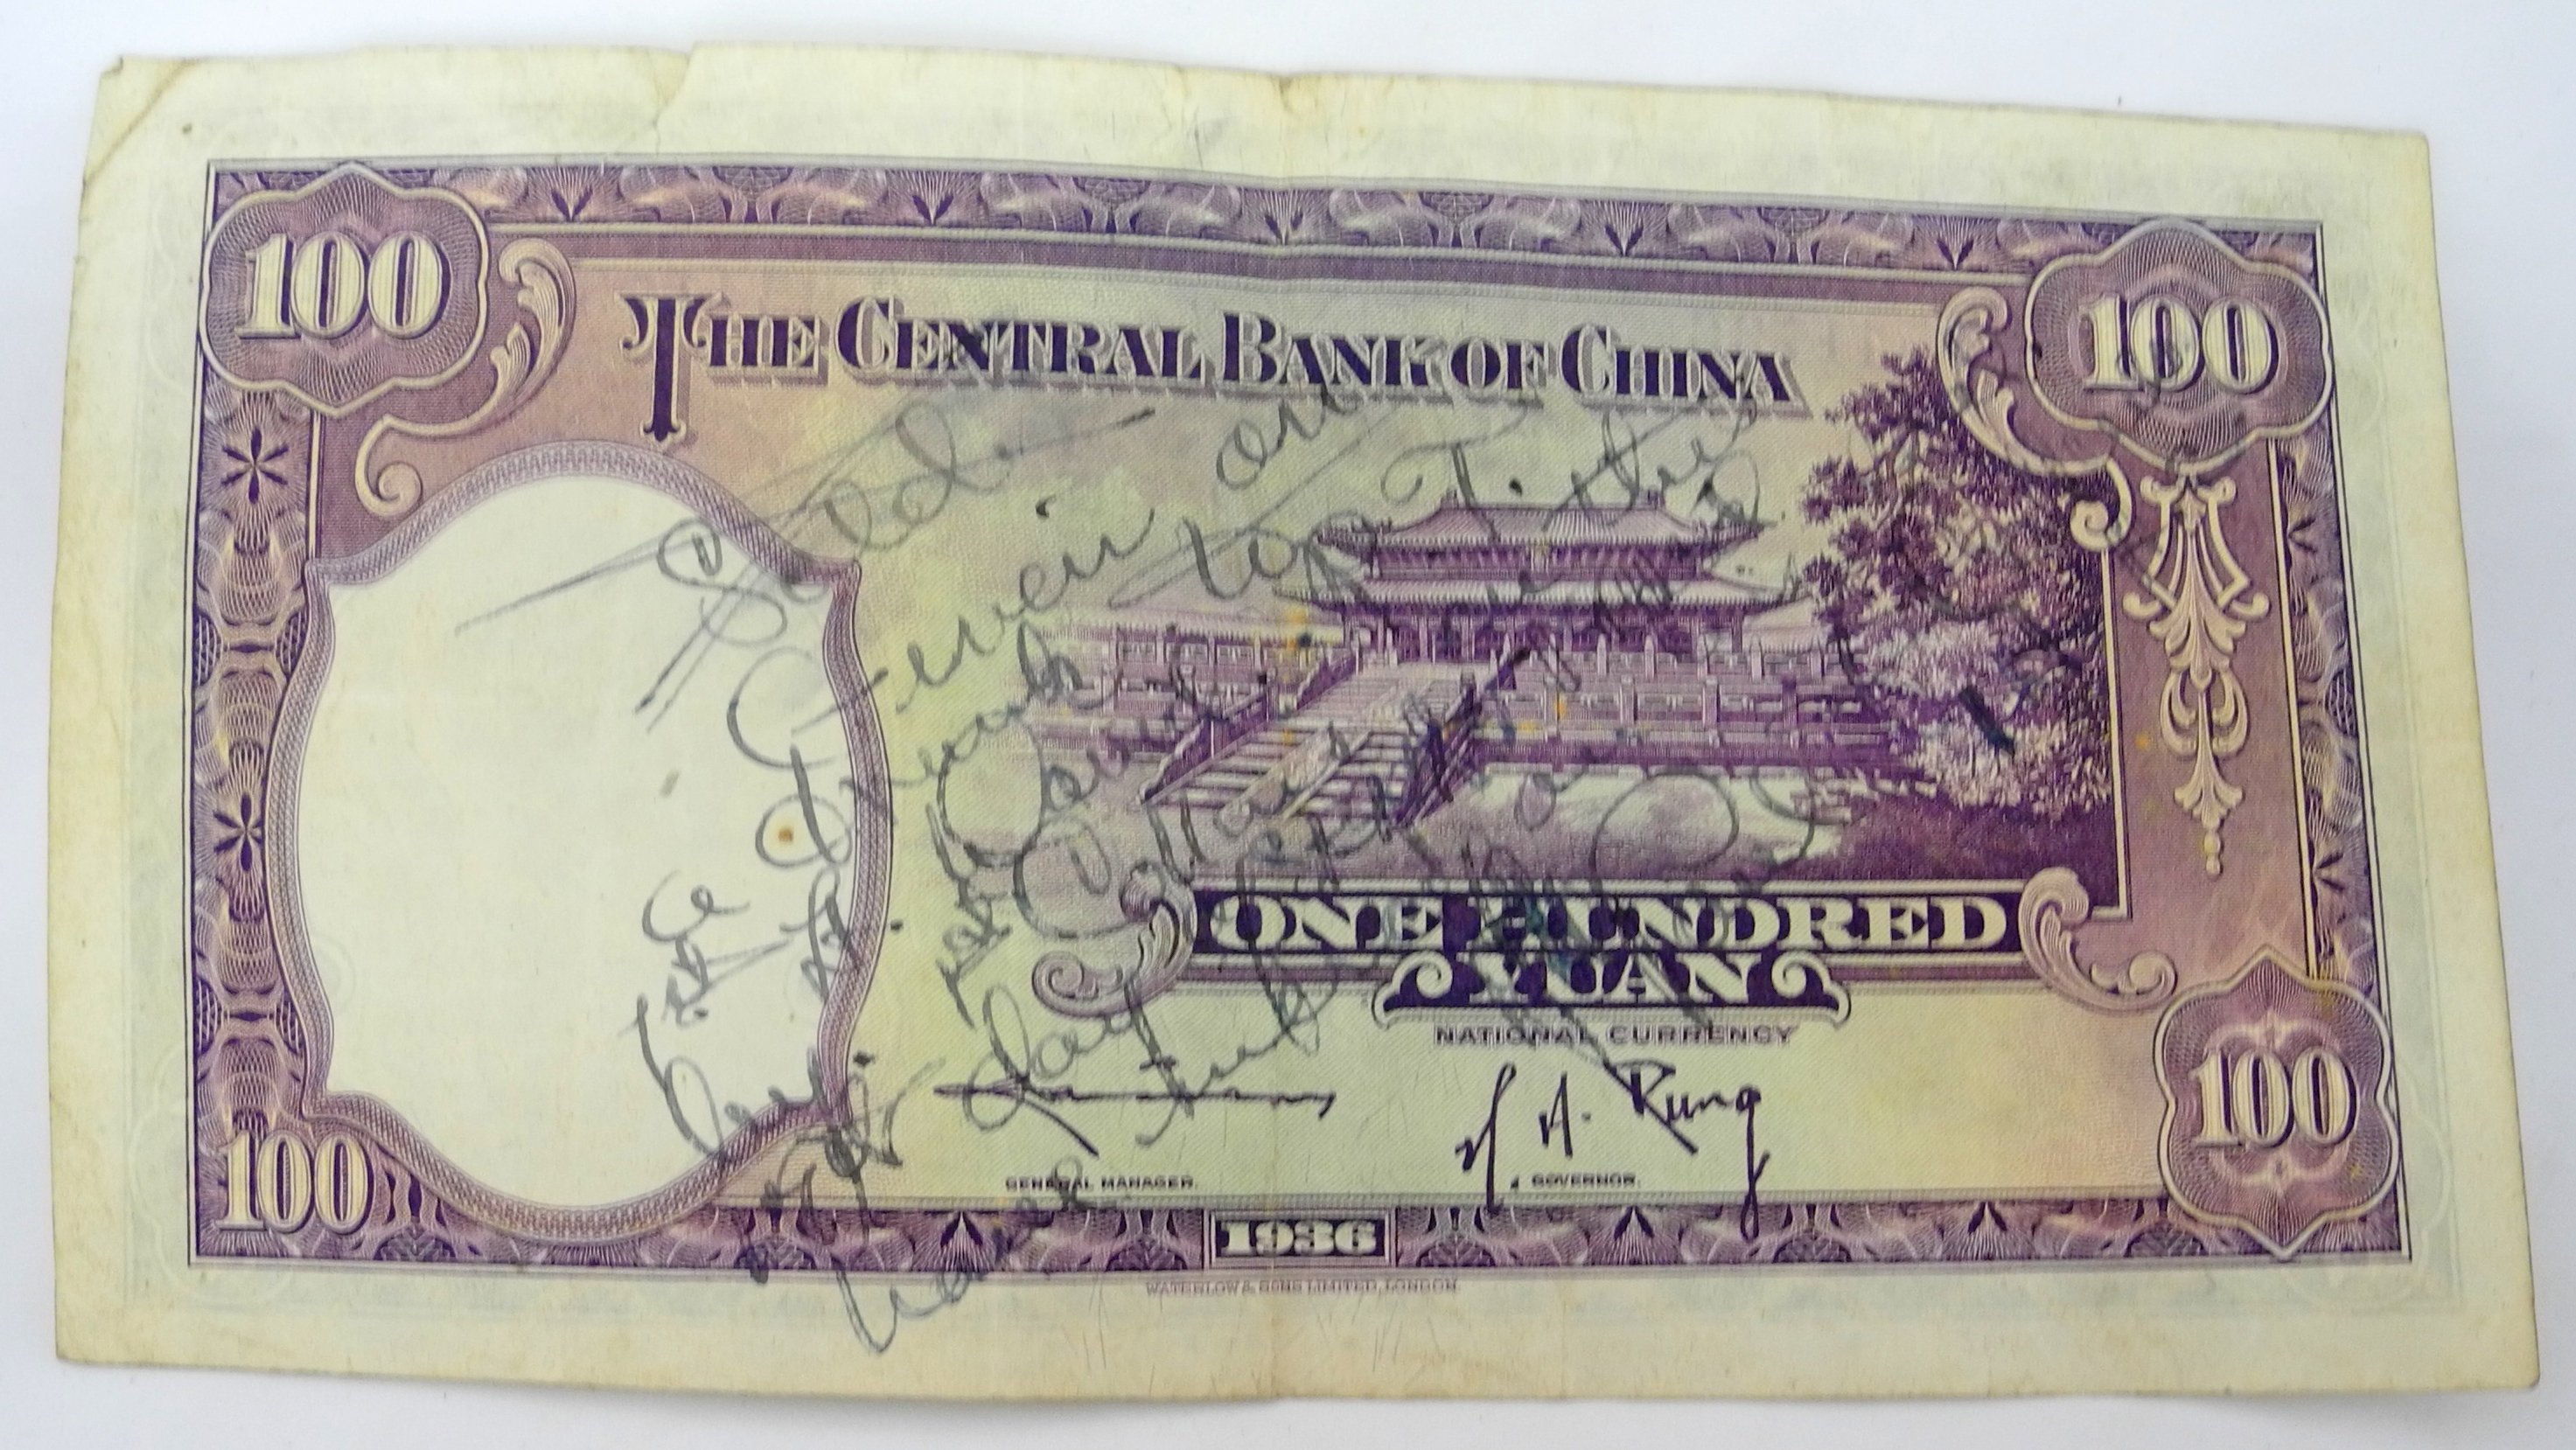 WWII Chinese banknote signed